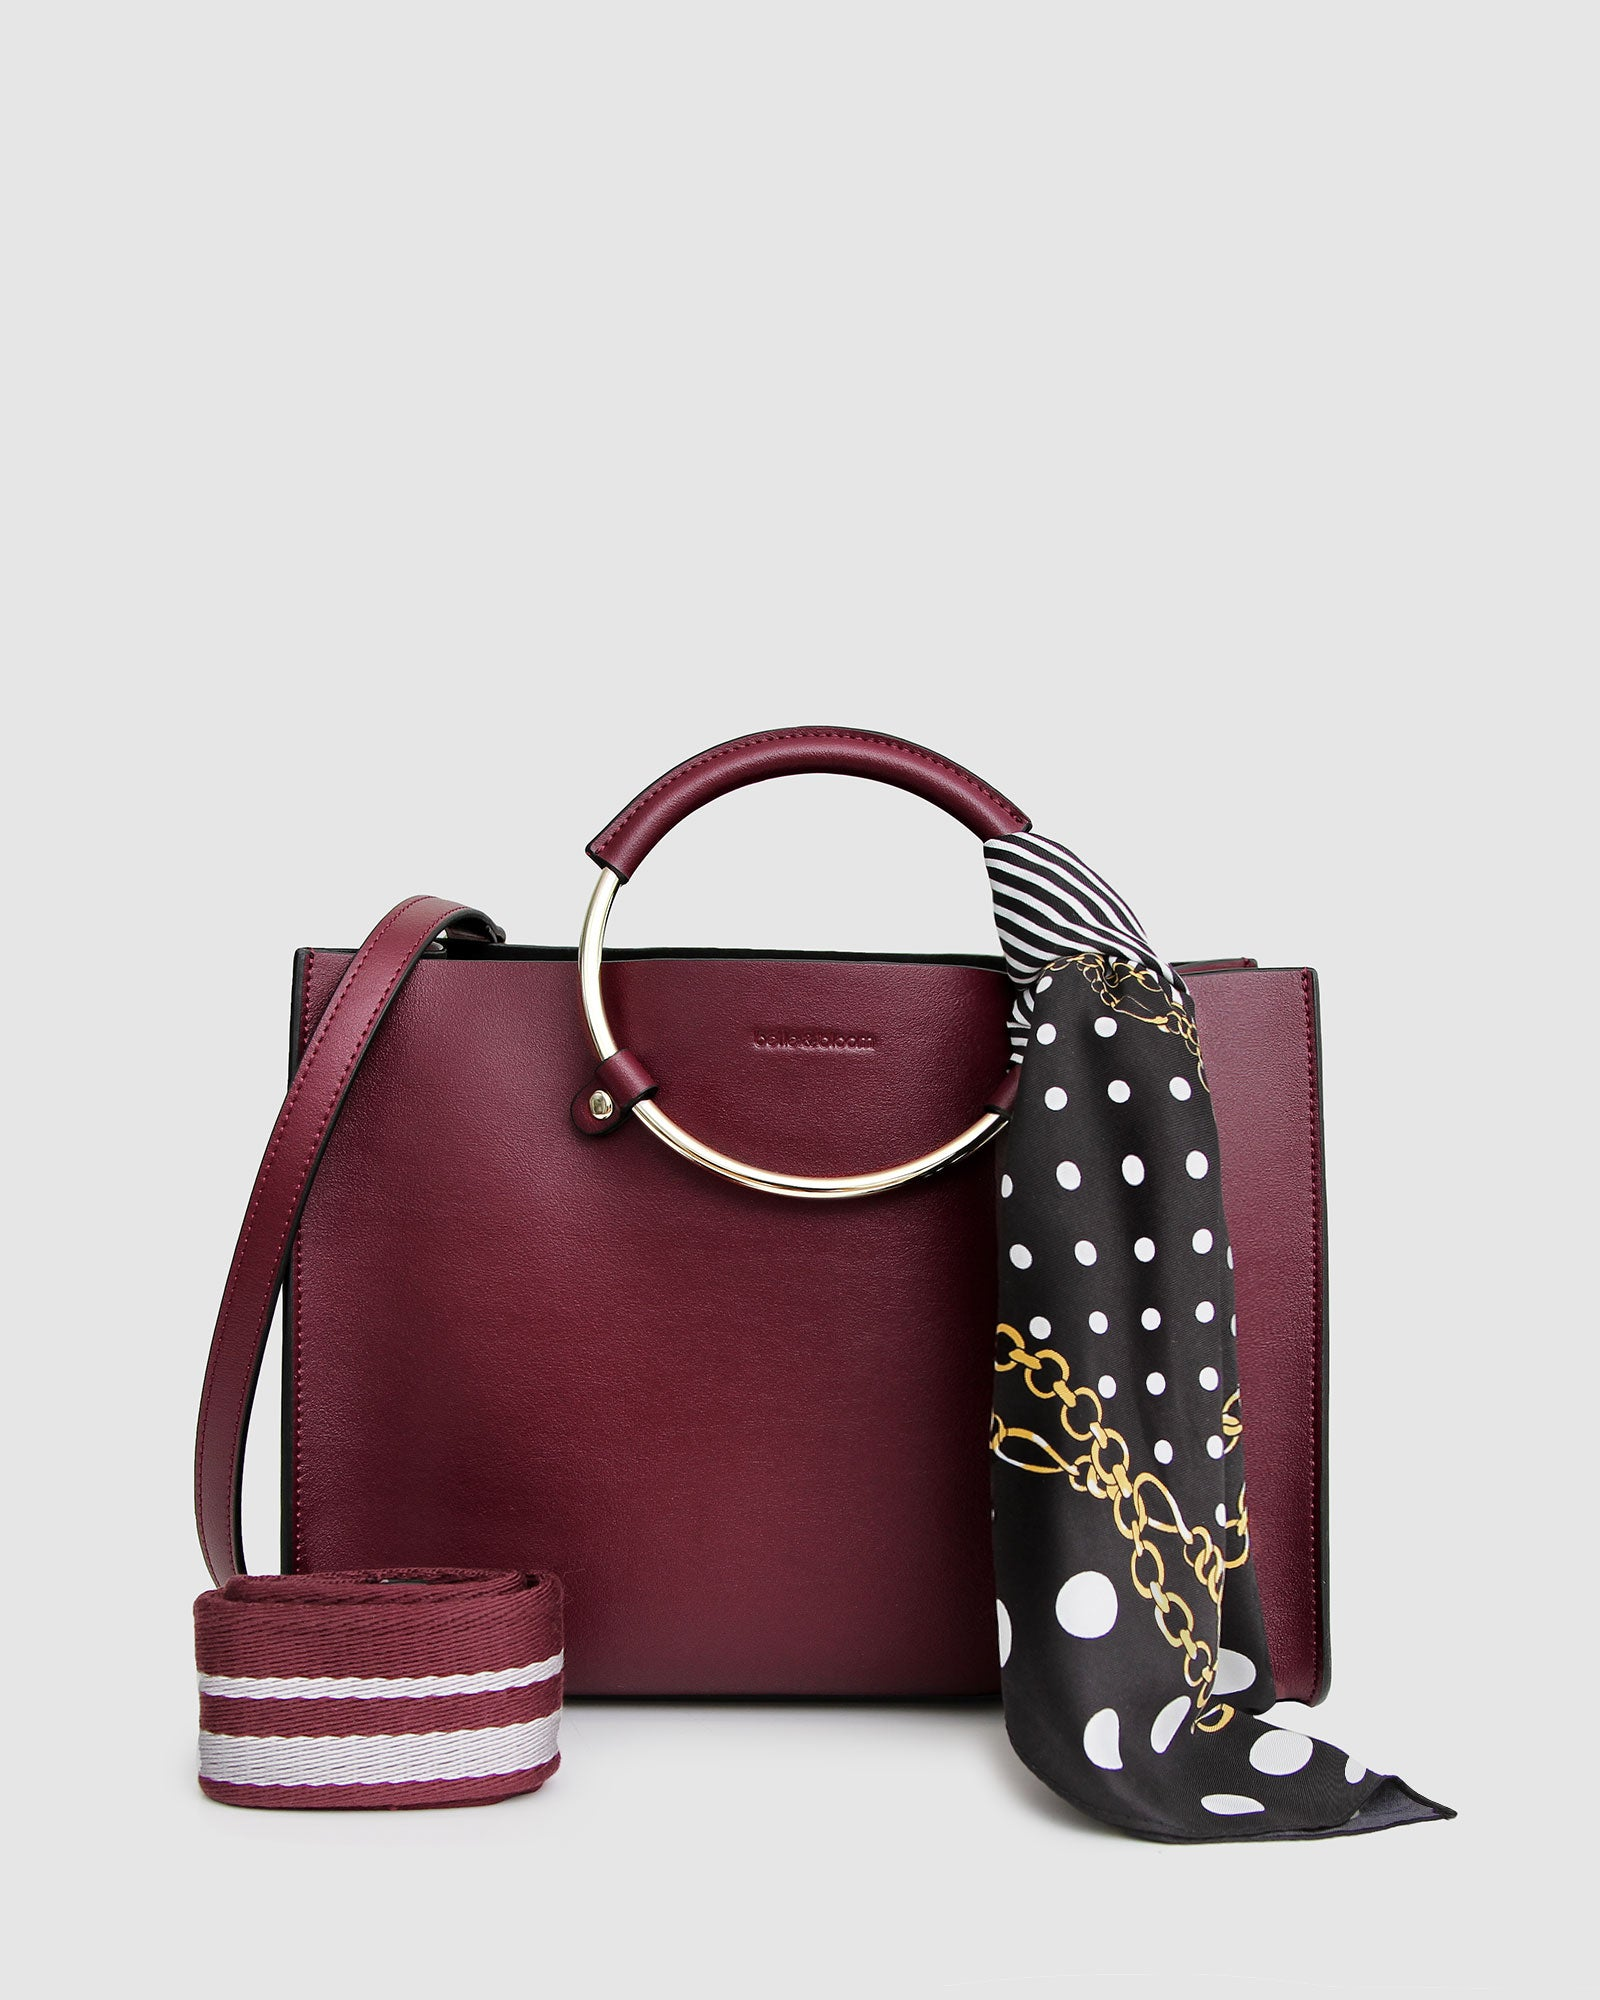 PALNEWIN---leather-bag-satchel-golden-ring-scarf-straps-front.jpg